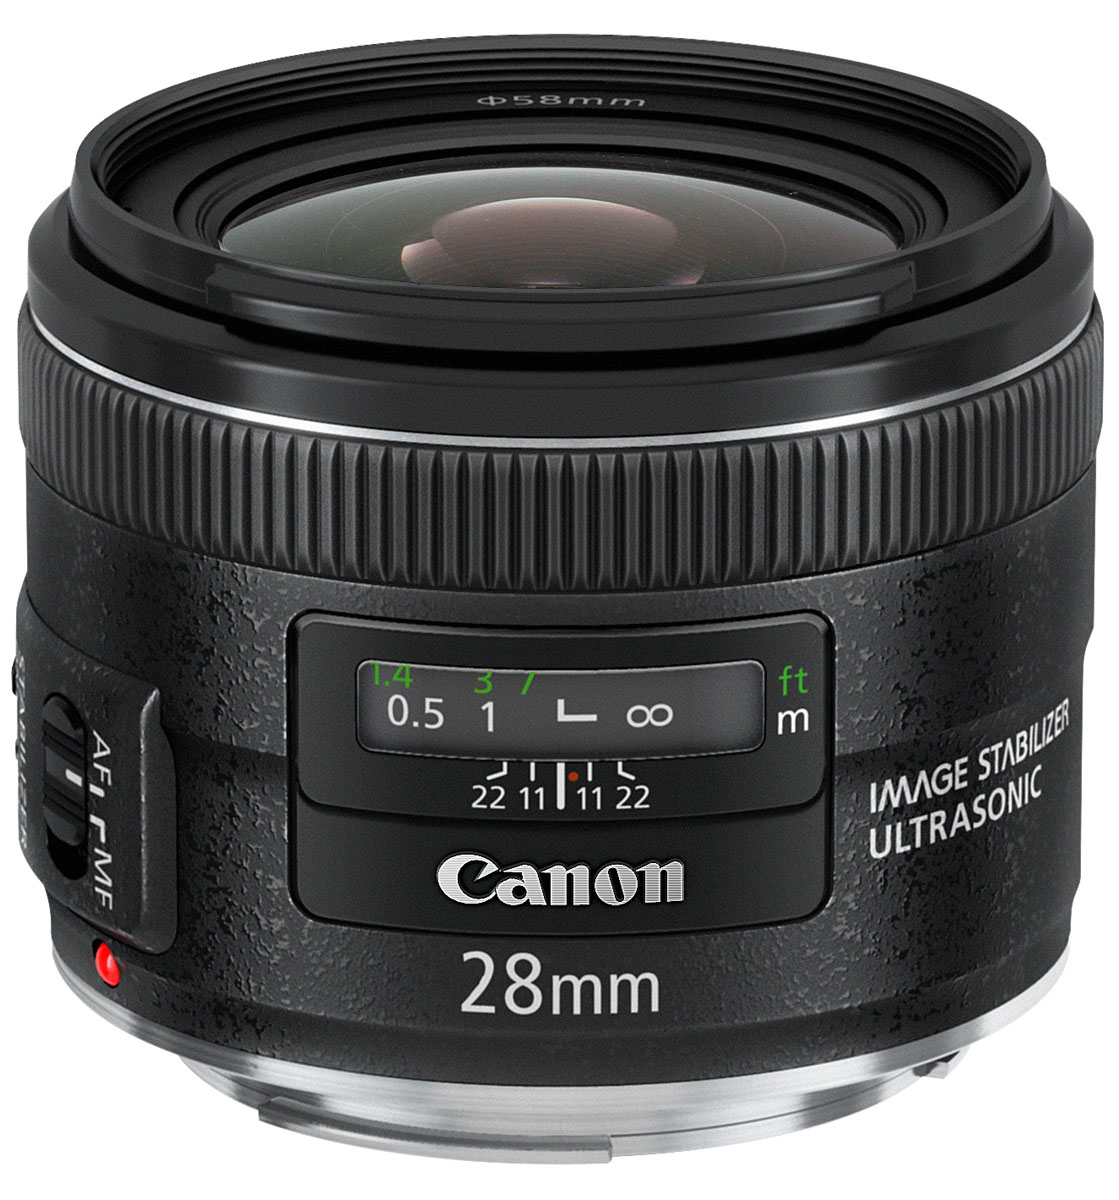 Canon EF 28 mm 2.8 IS USM, Black объектив